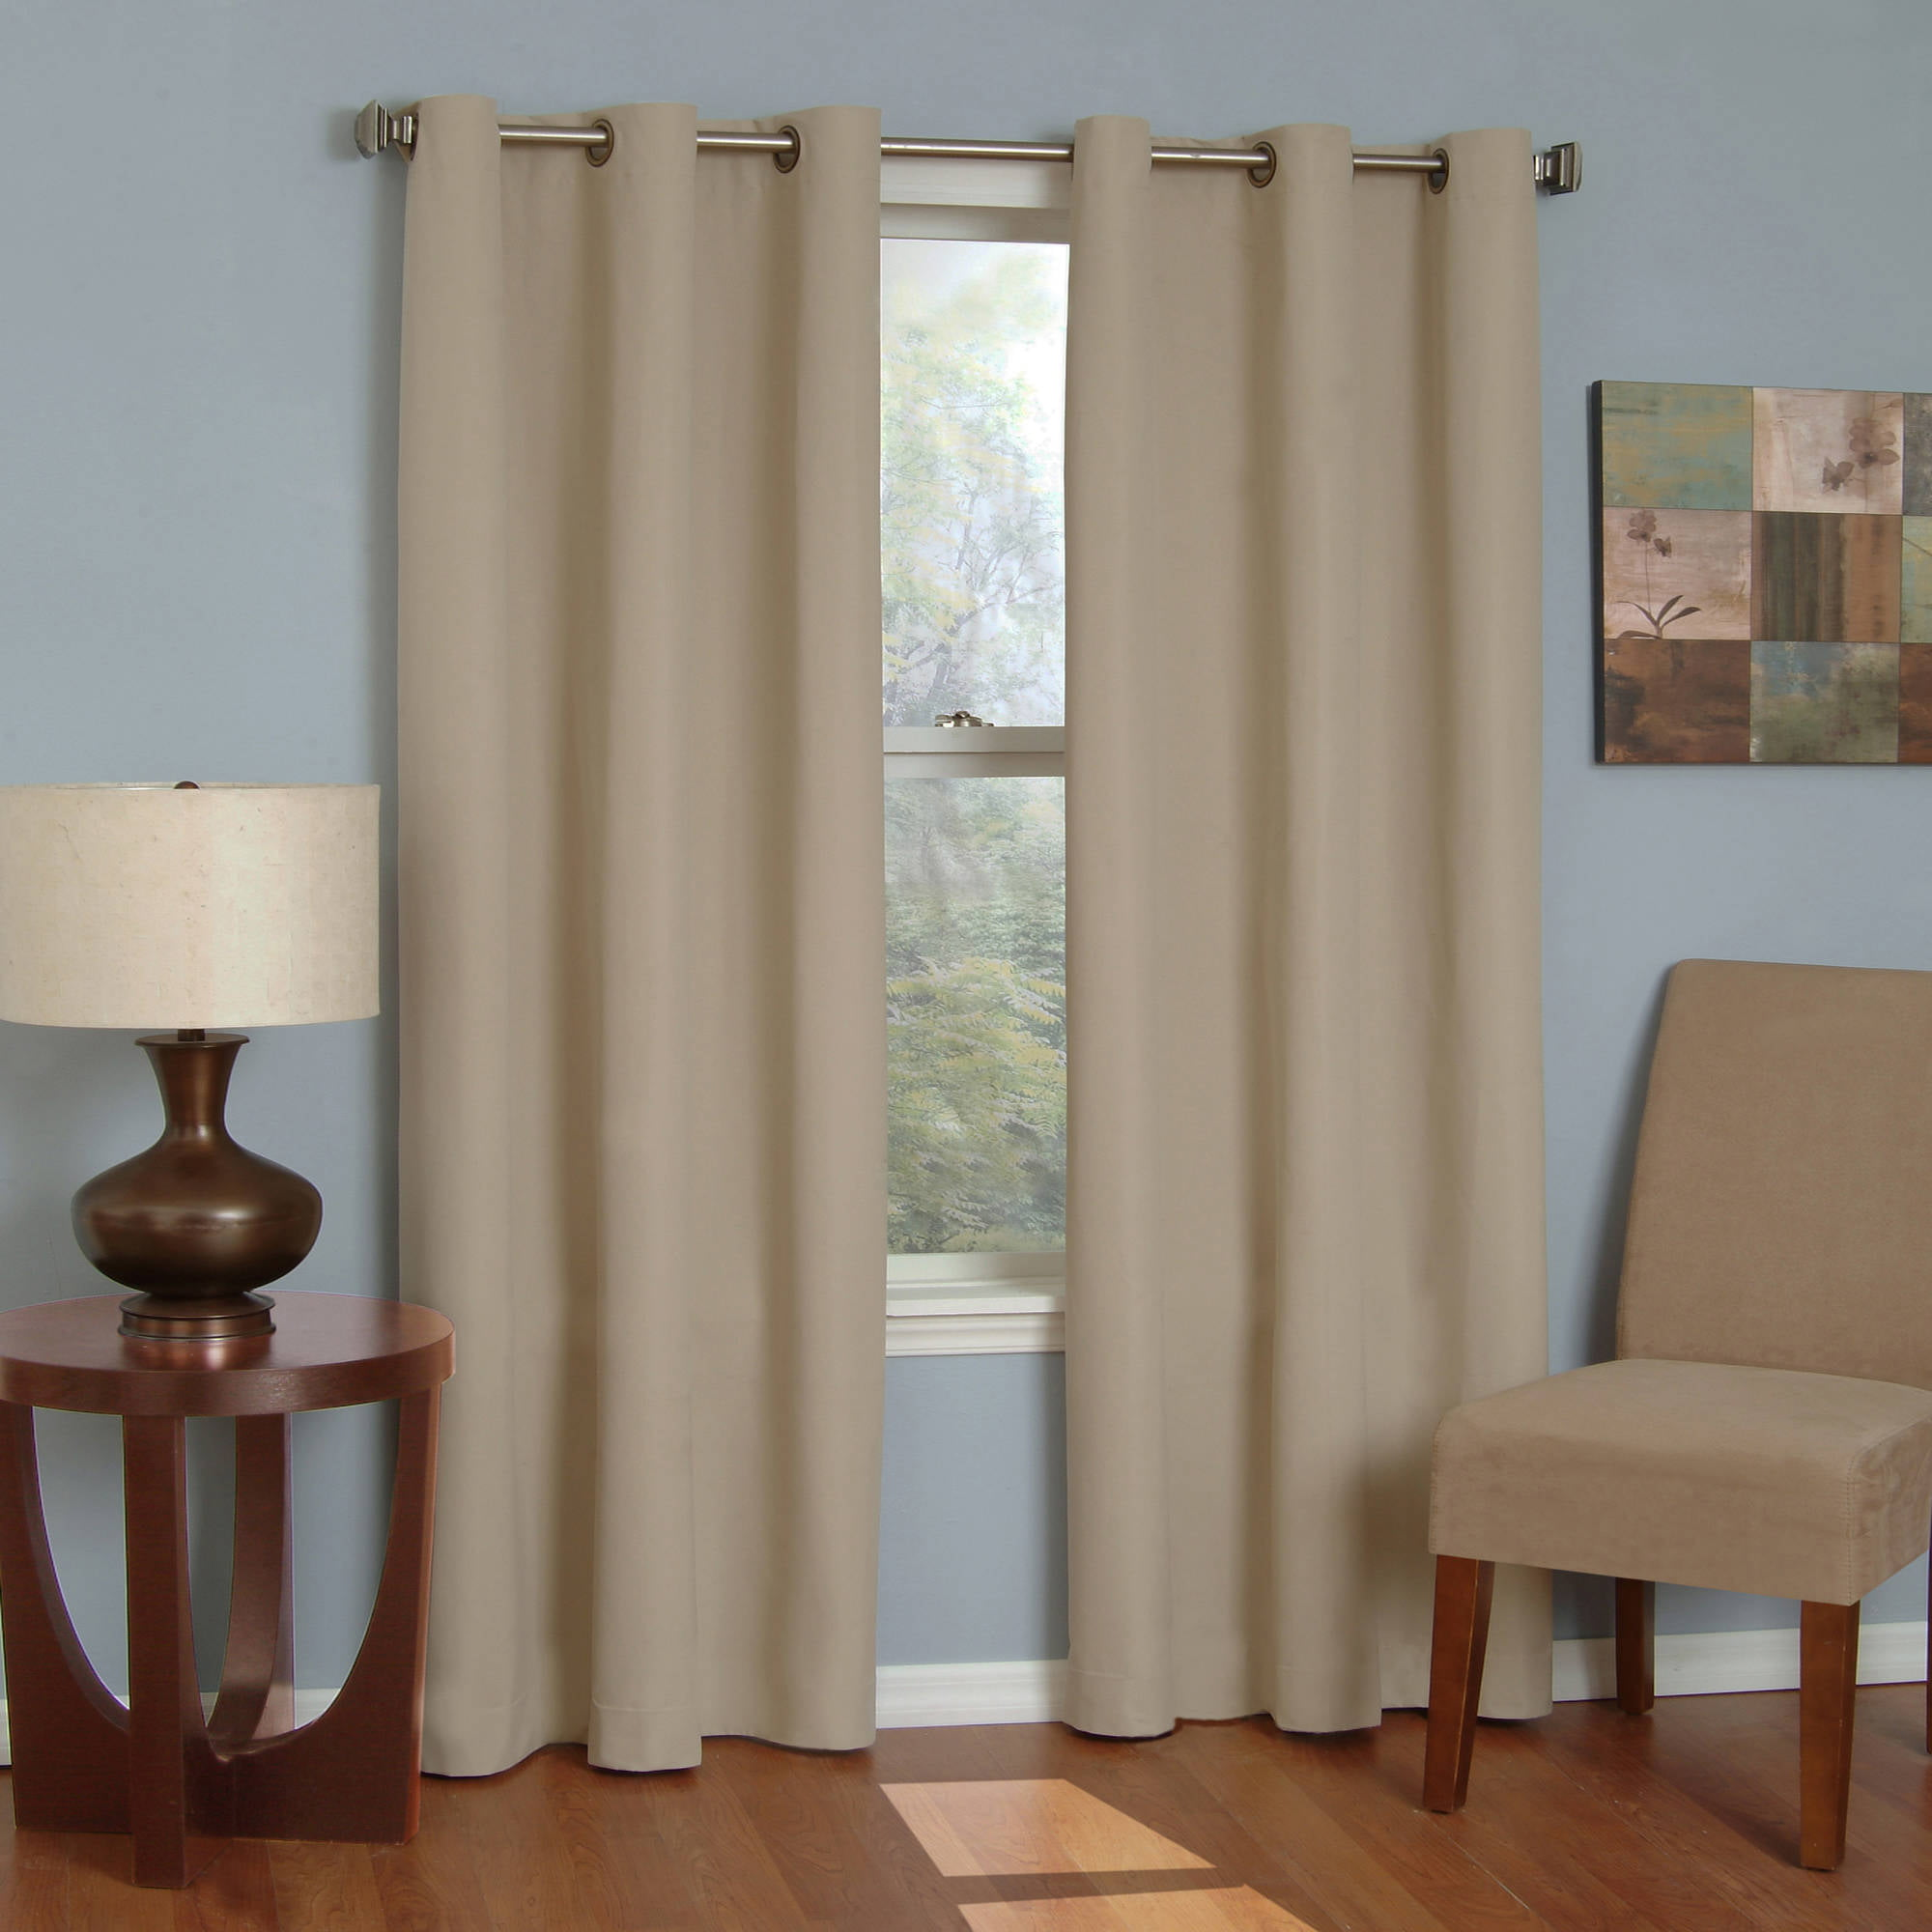 curtains window pleasing harmonious bedroom models and curtain